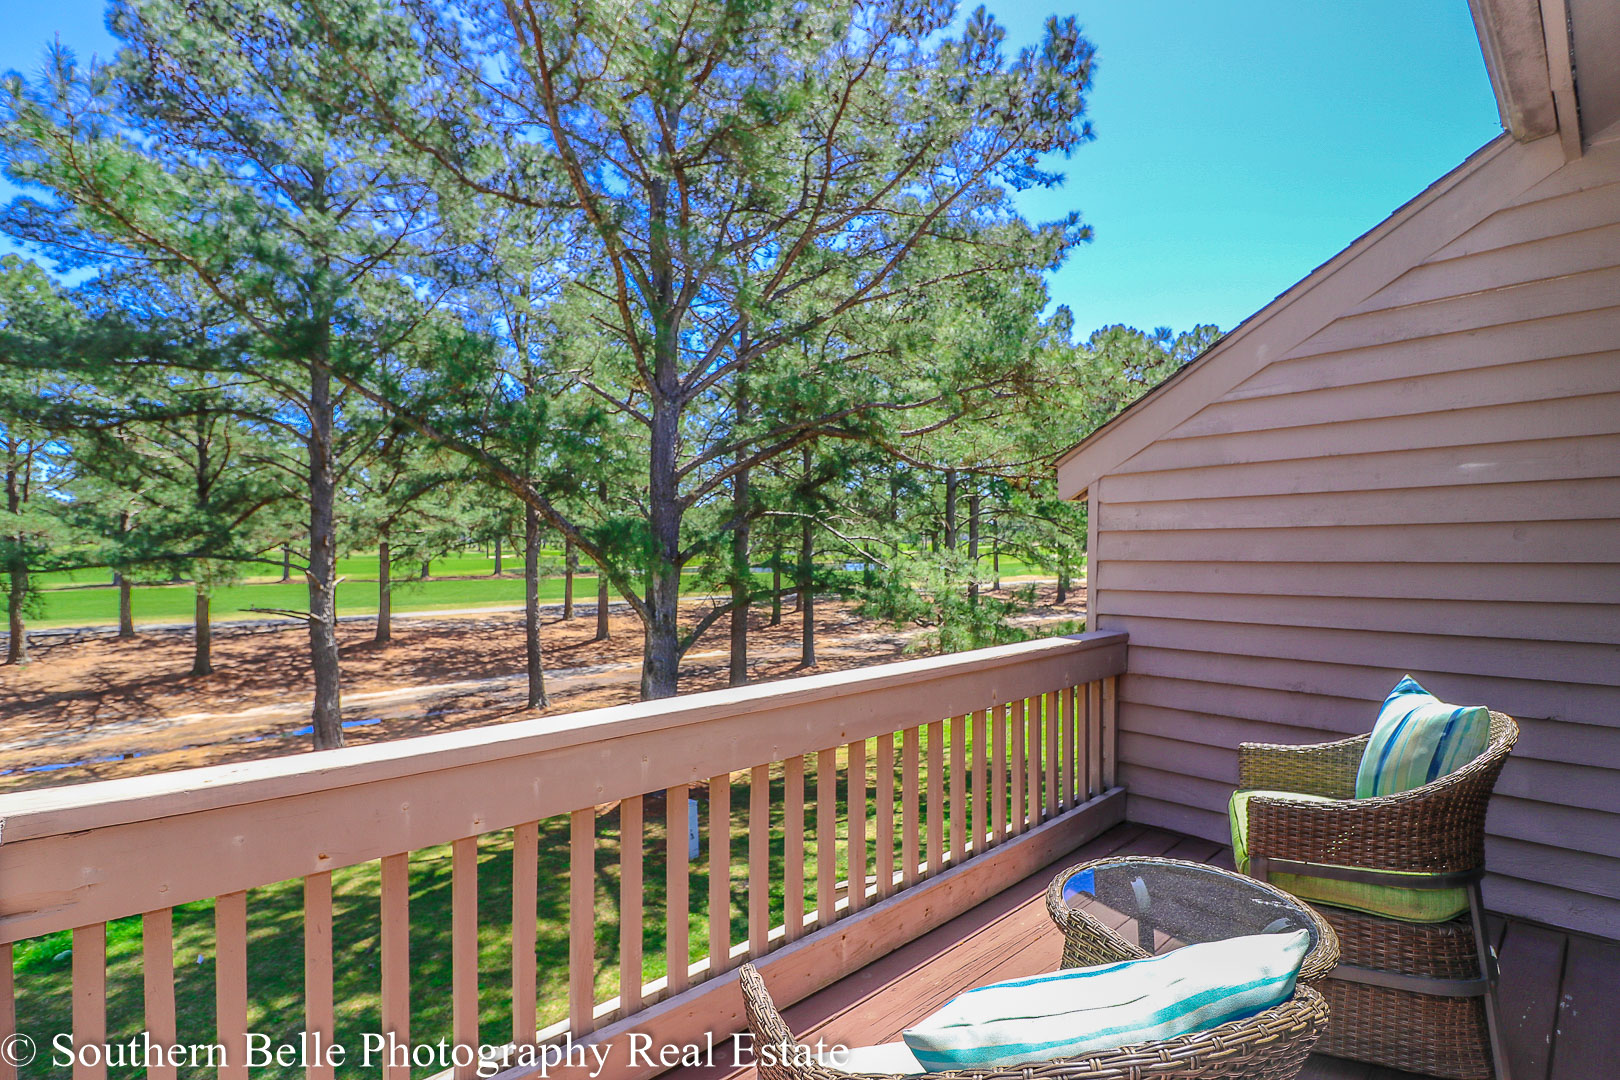 25. Master Bedroom Balcony with Golf Course Views WM